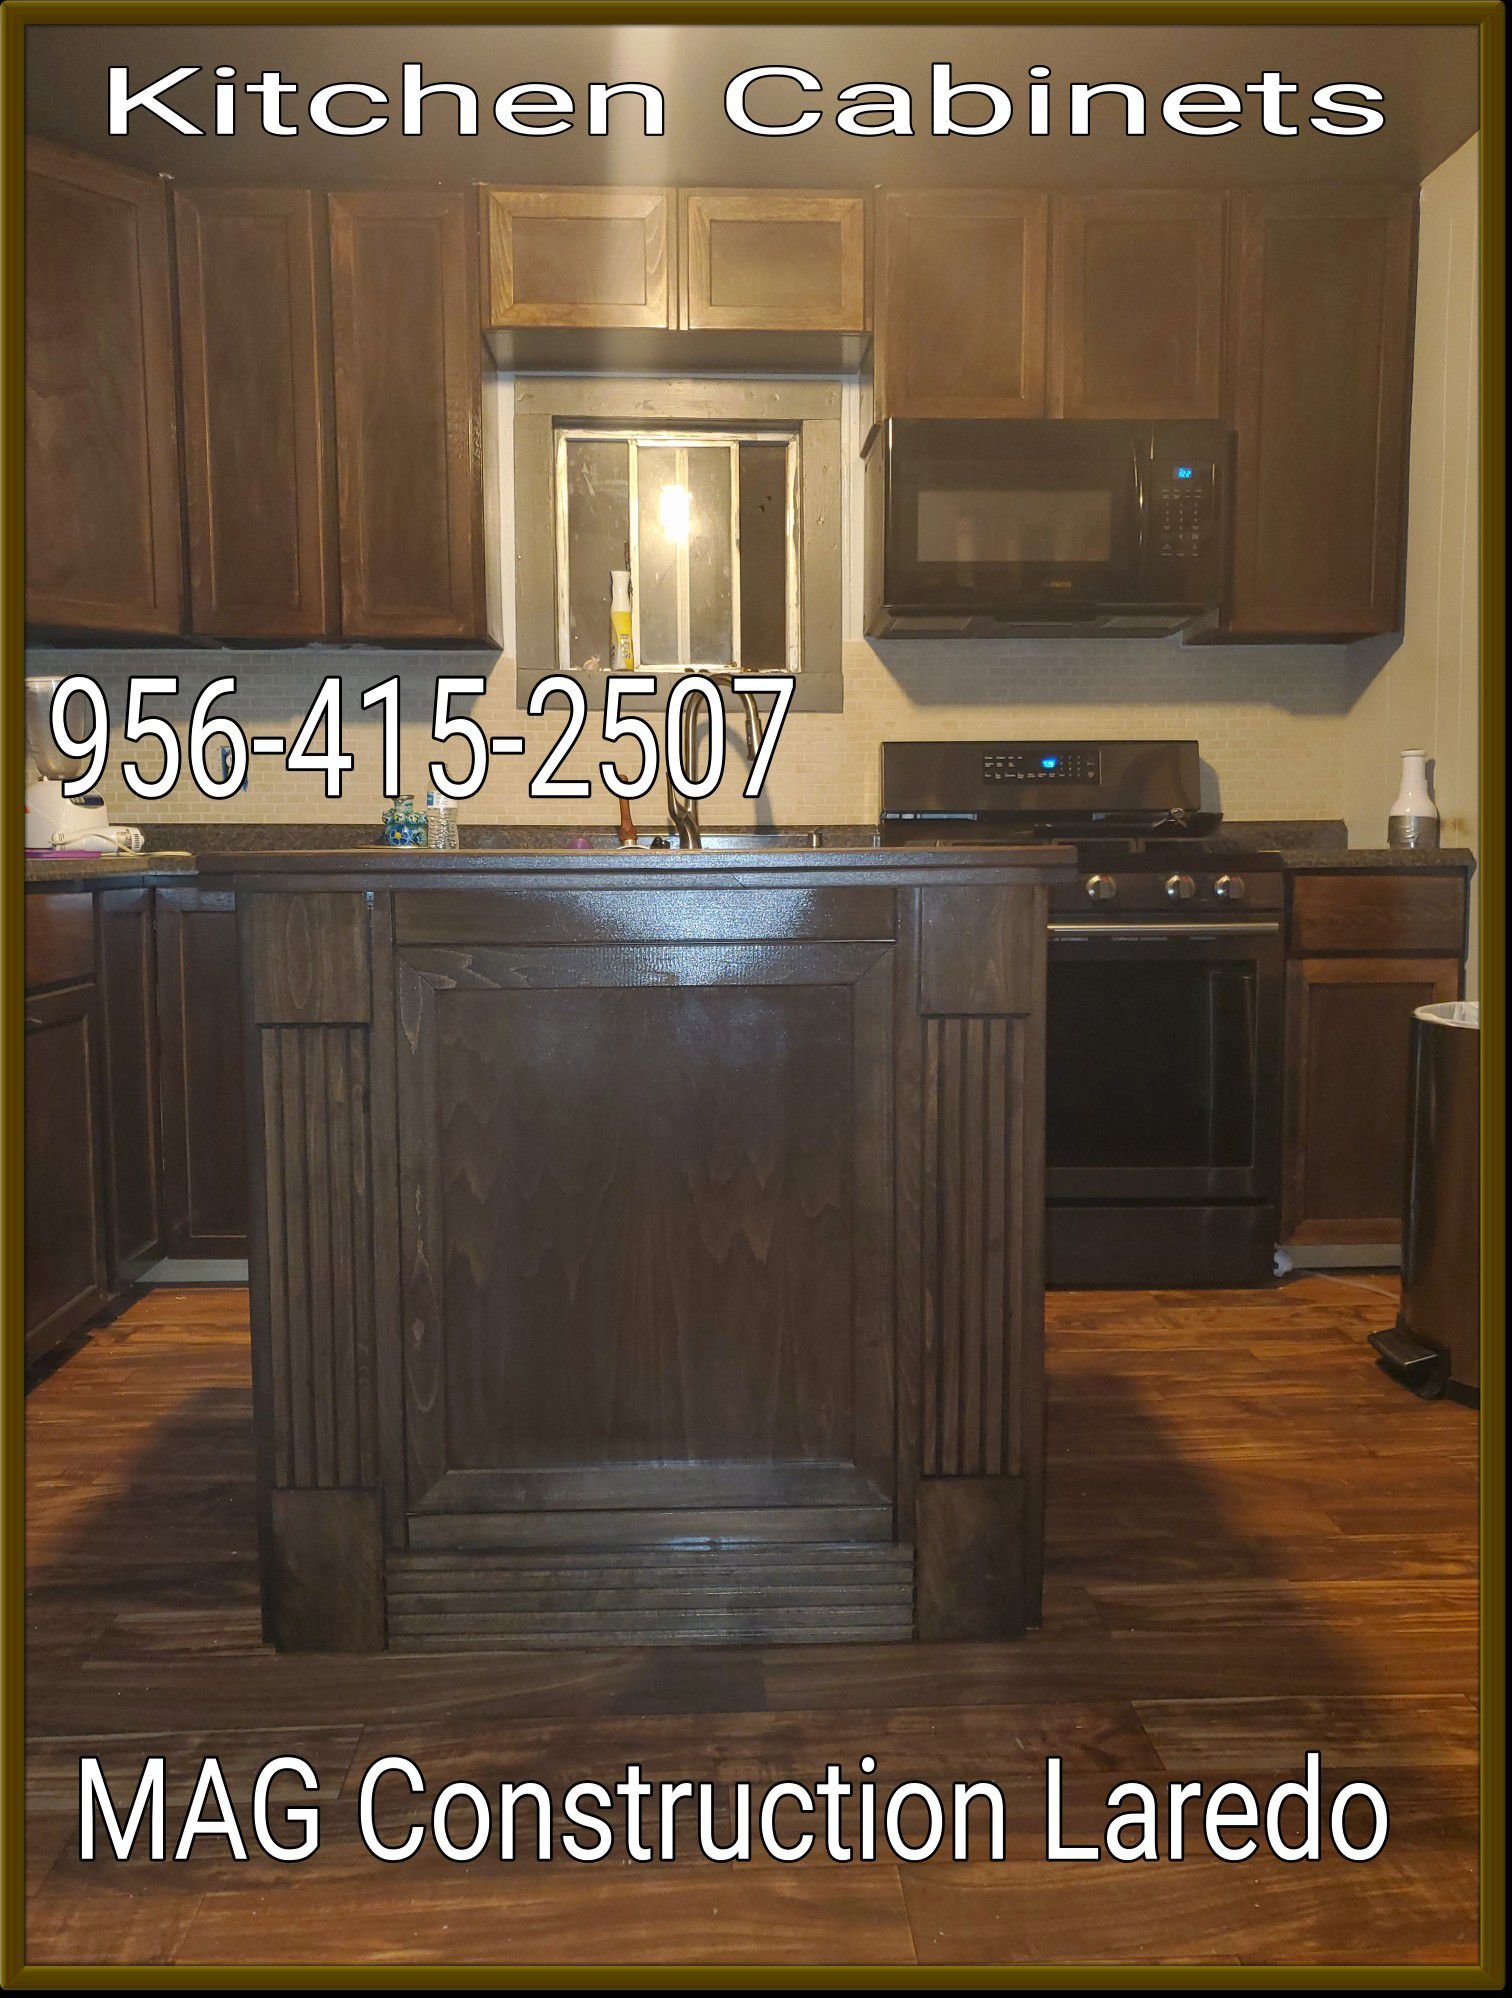 New And Used Kitchen Cabinets For Sale In Laredo Tx Offerup